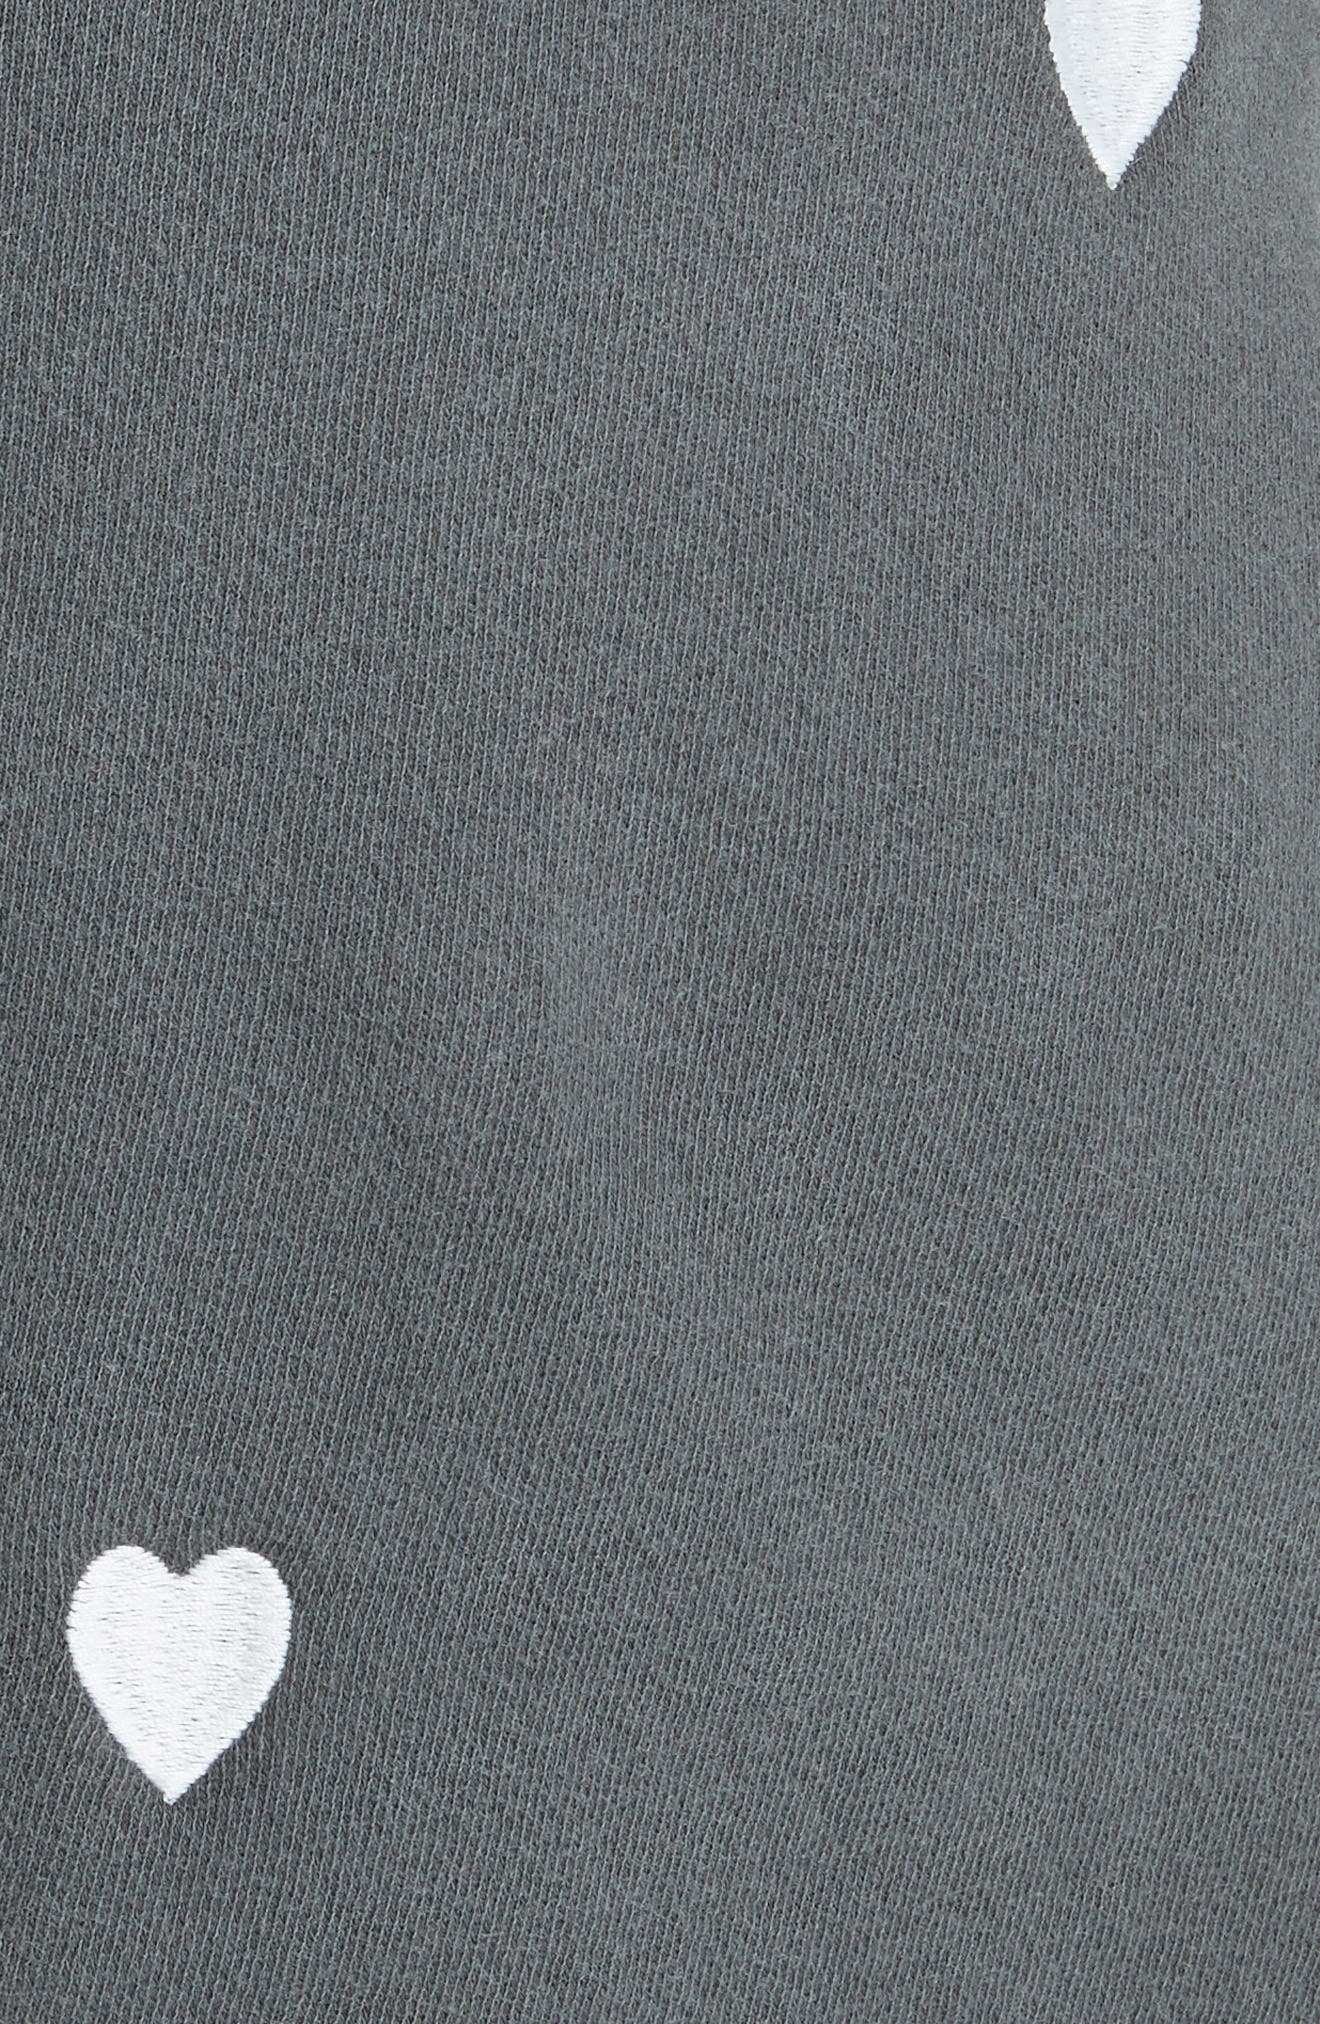 The Sweat Shorts,                             Alternate thumbnail 5, color,                             Washed Black/ White Hearts